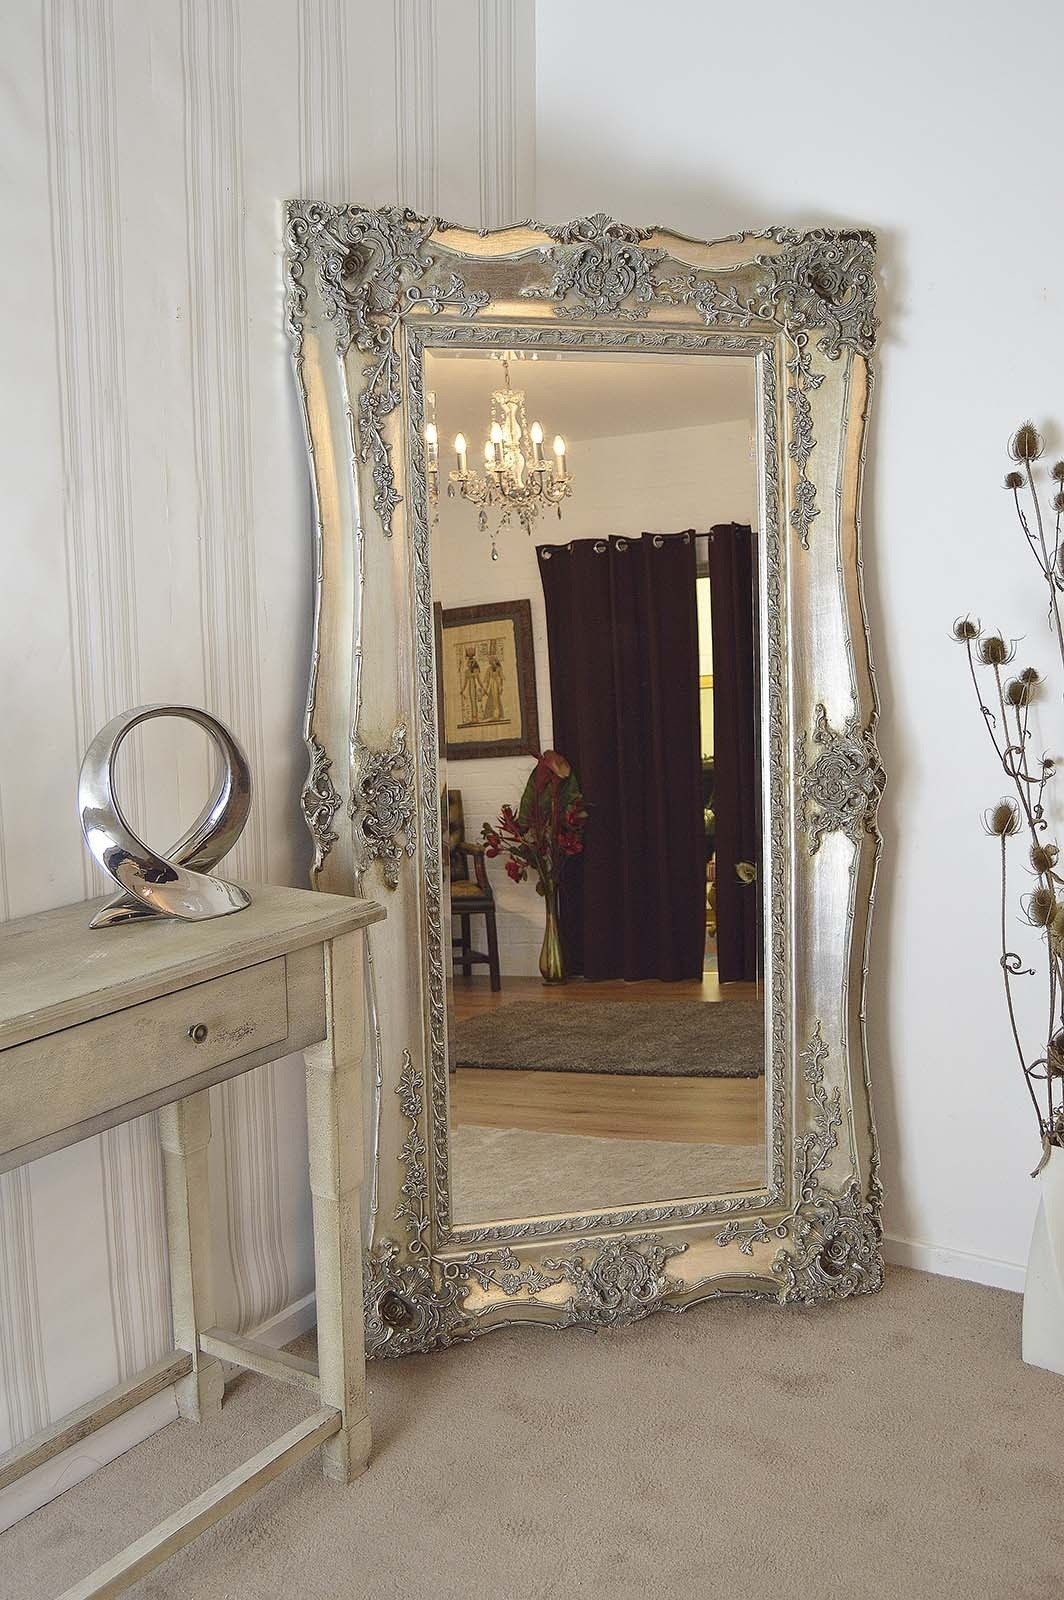 Bedroom Furniture Unique Mirrors Full Length Mirror Small Pertaining To Big Floor Standing Mirrors (Image 2 of 15)